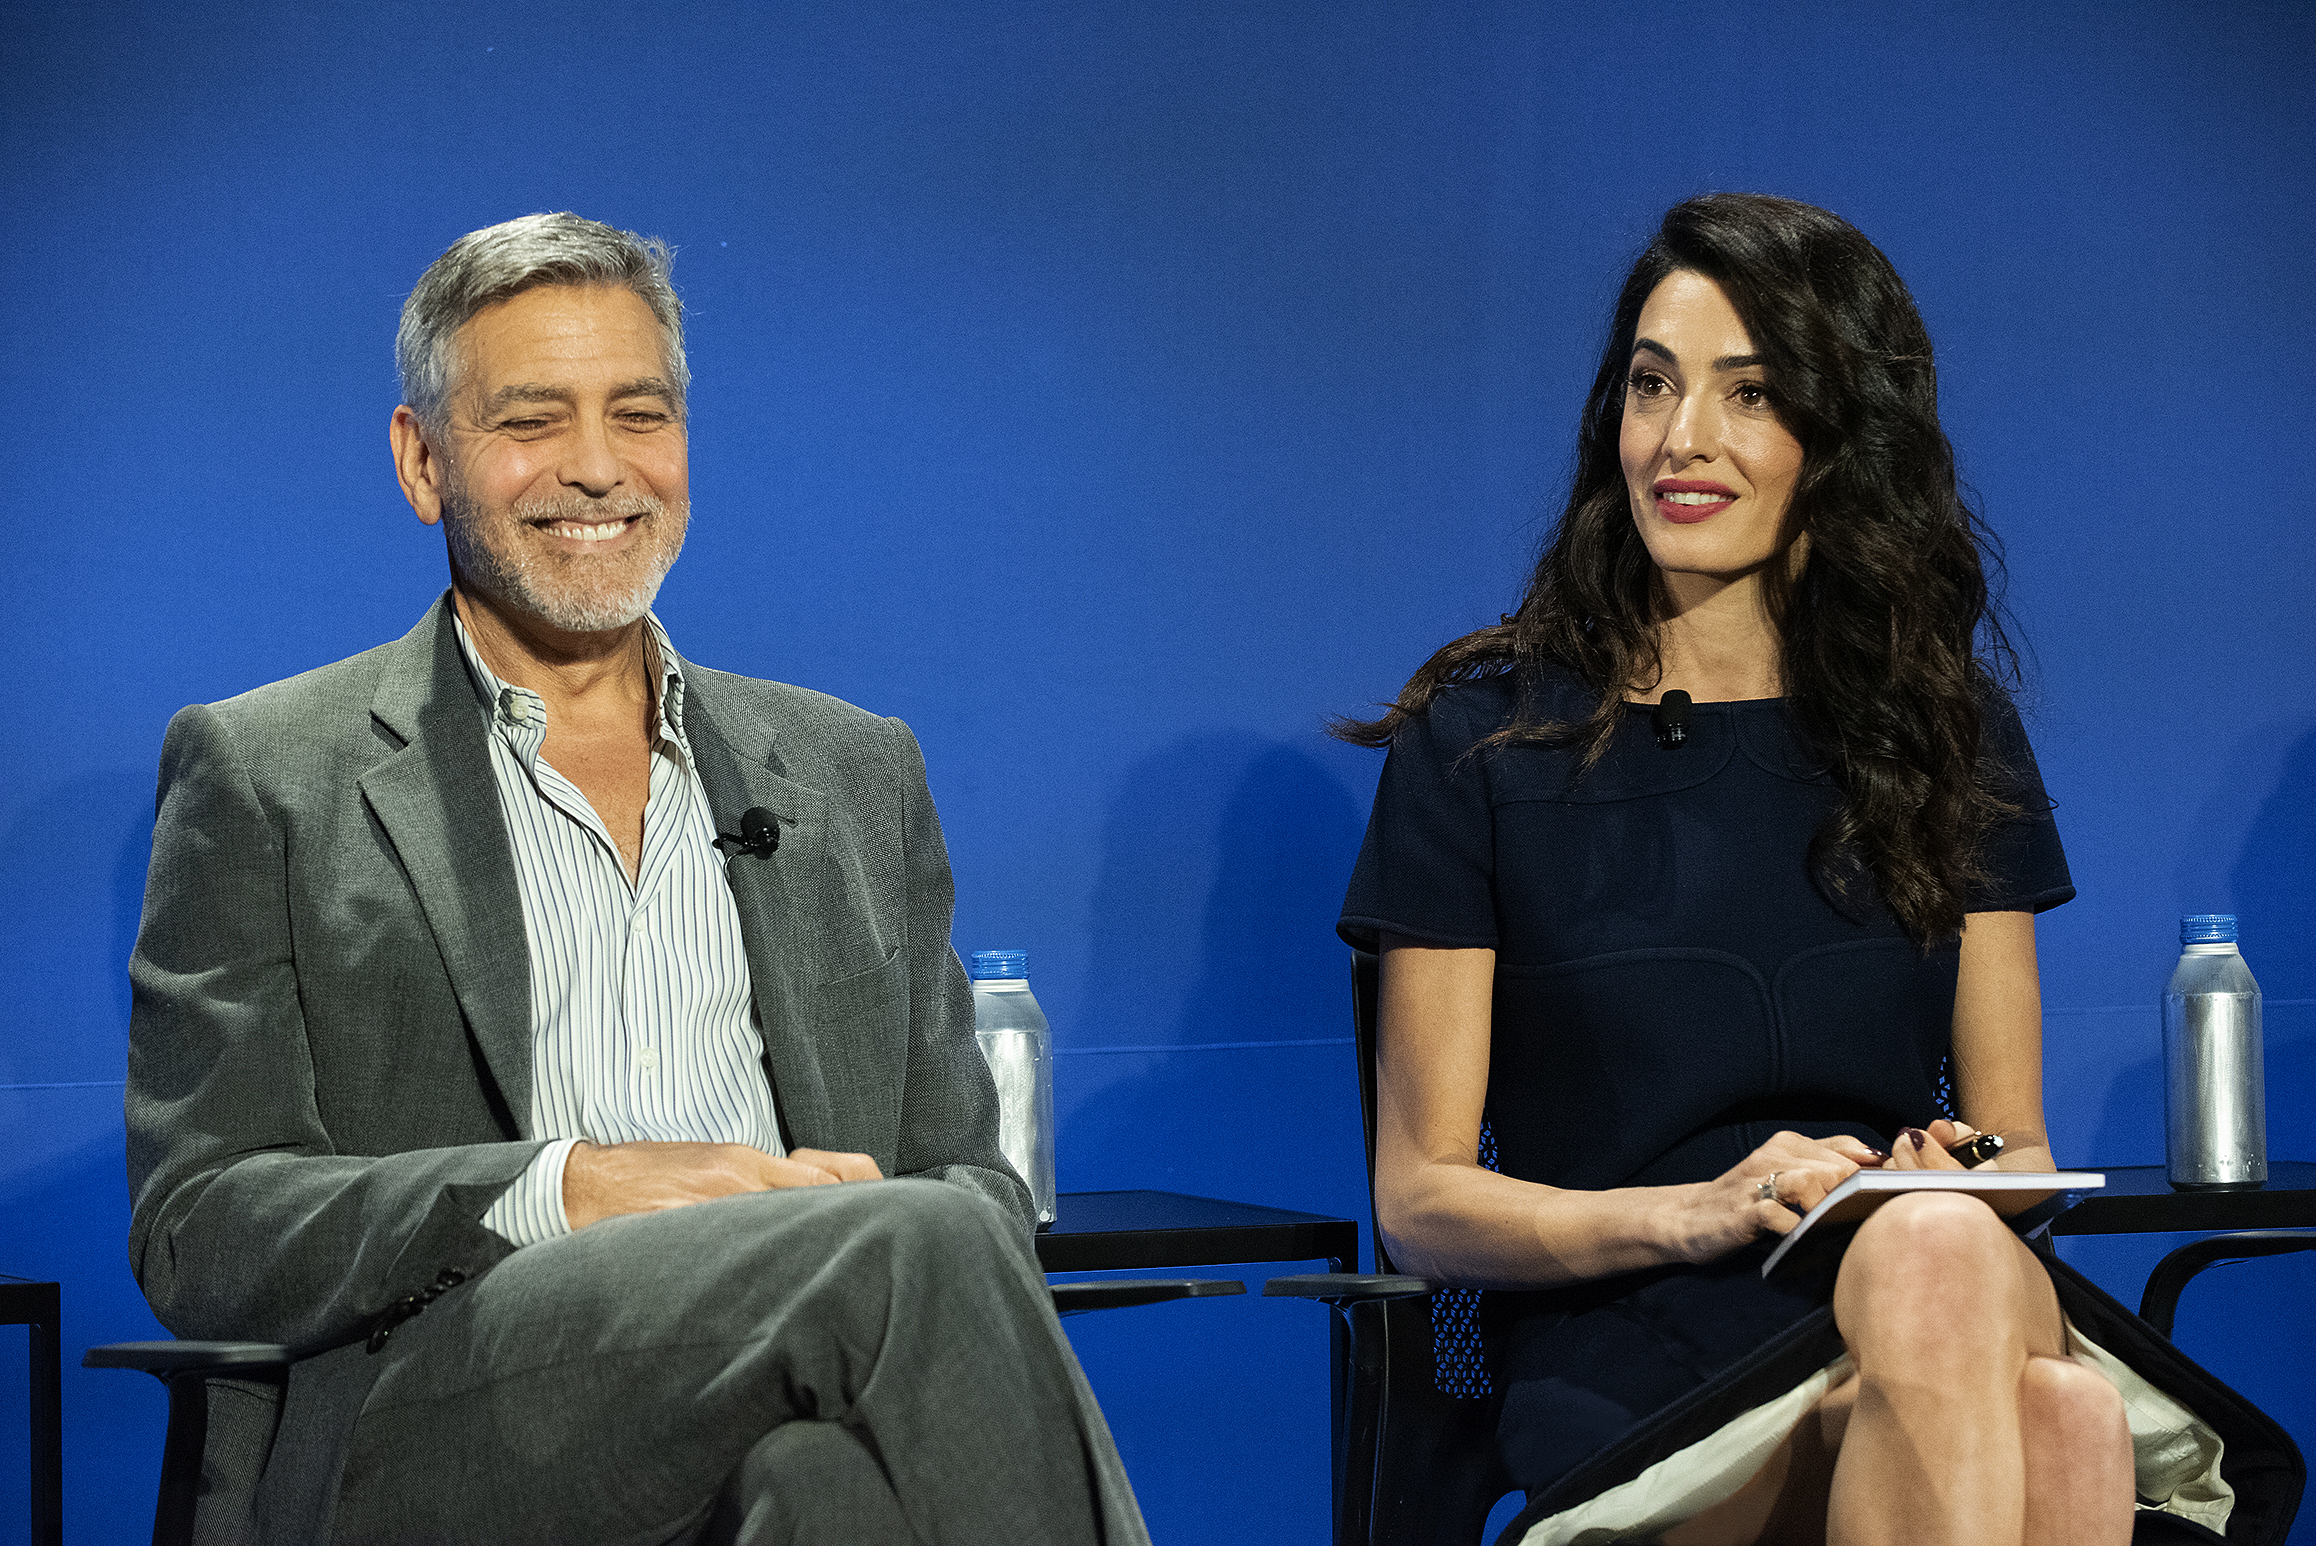 From left: Clooney Foundation for Justice Co-presidents George and Amal Clooney.